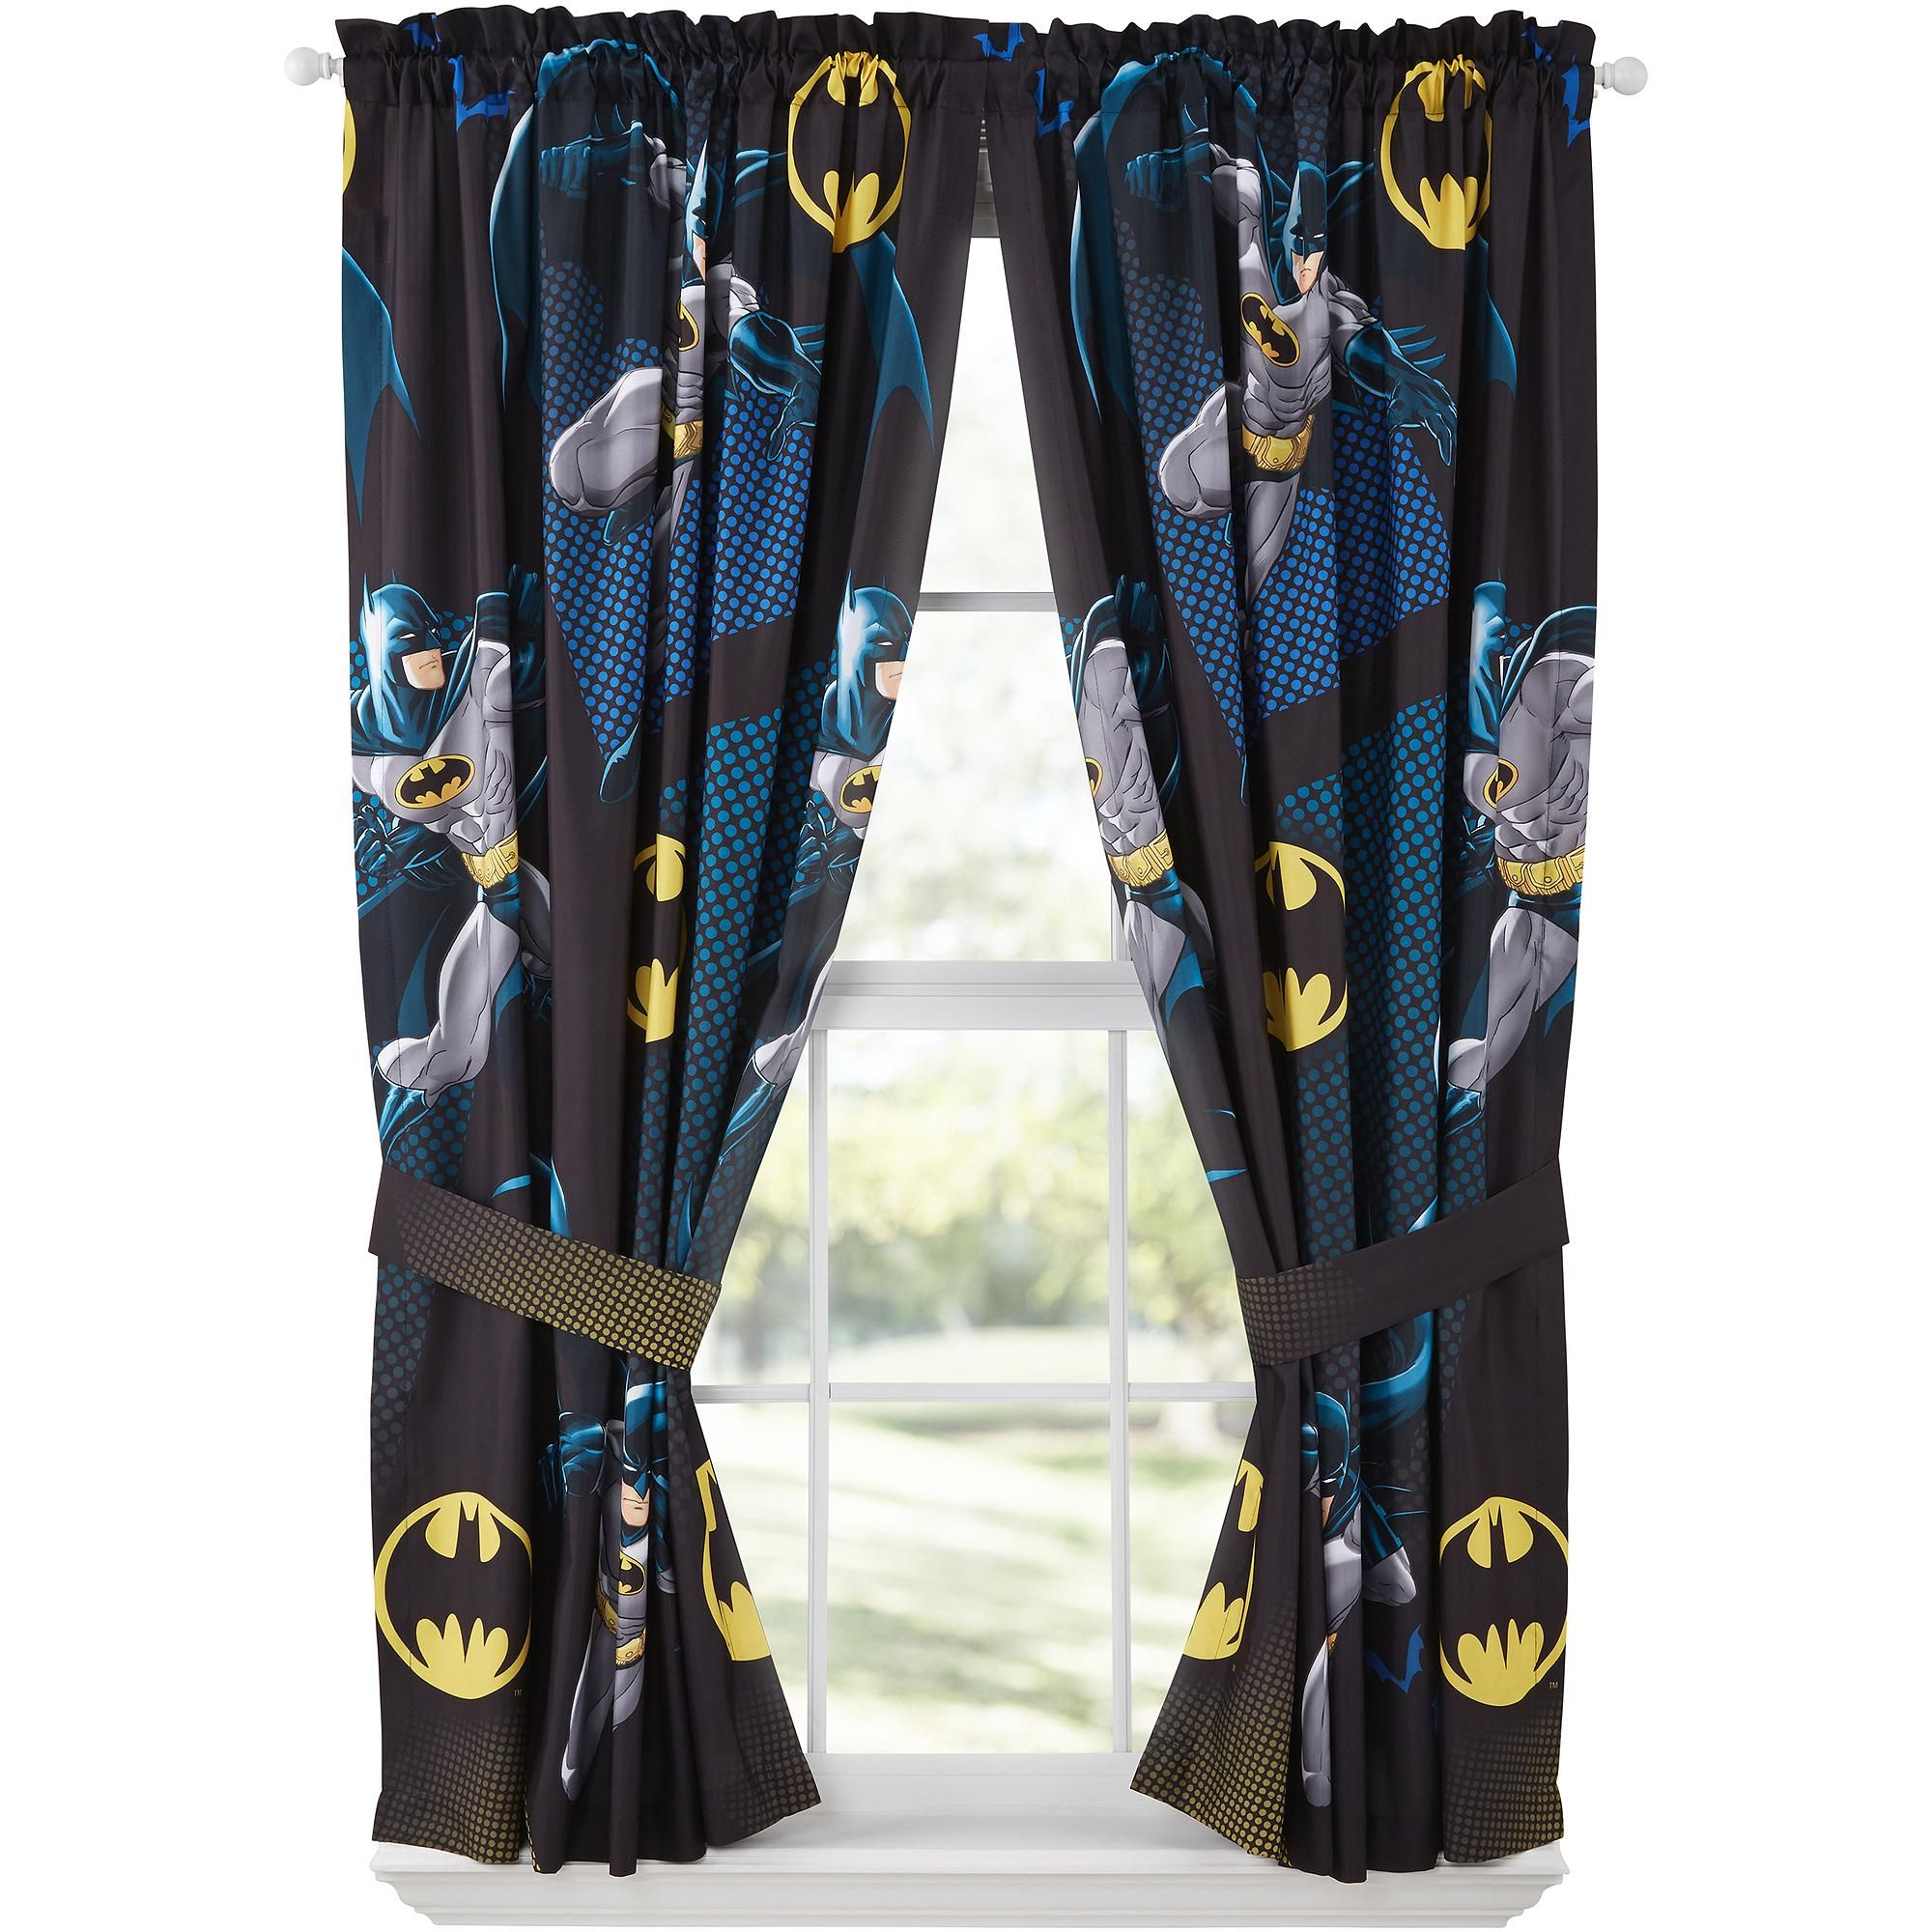 Batman Curtains Google Search Batman Room Batman Bed Kids